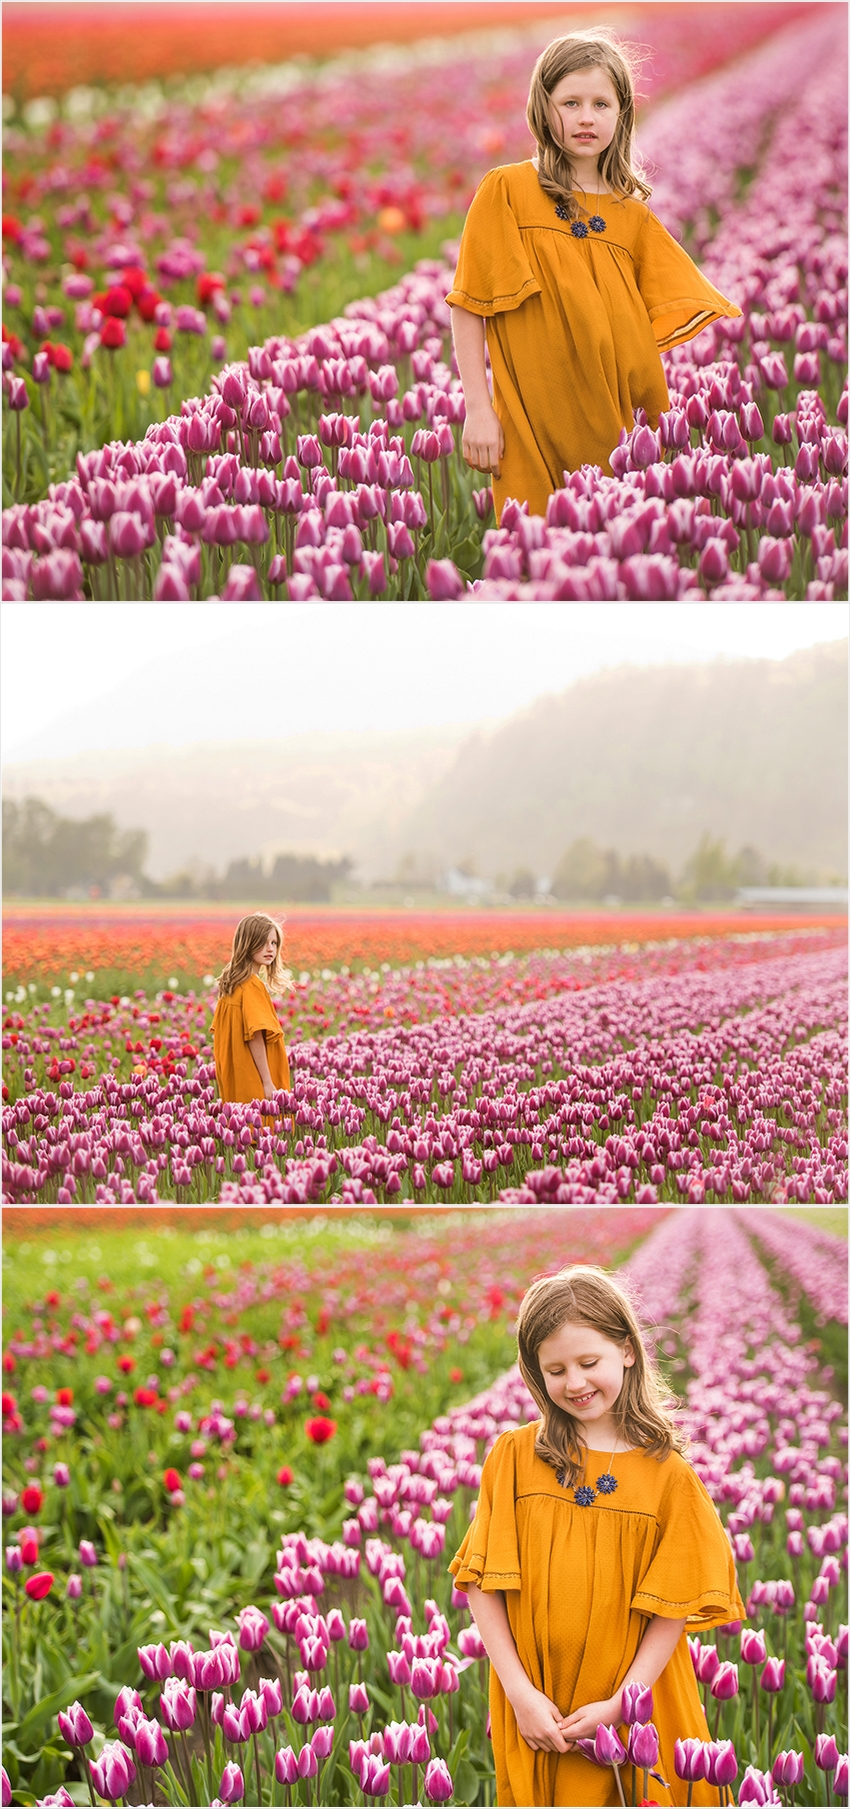 Abbotsford Photographer Family Children Tulip Farm Sunset 004 (Side 4)